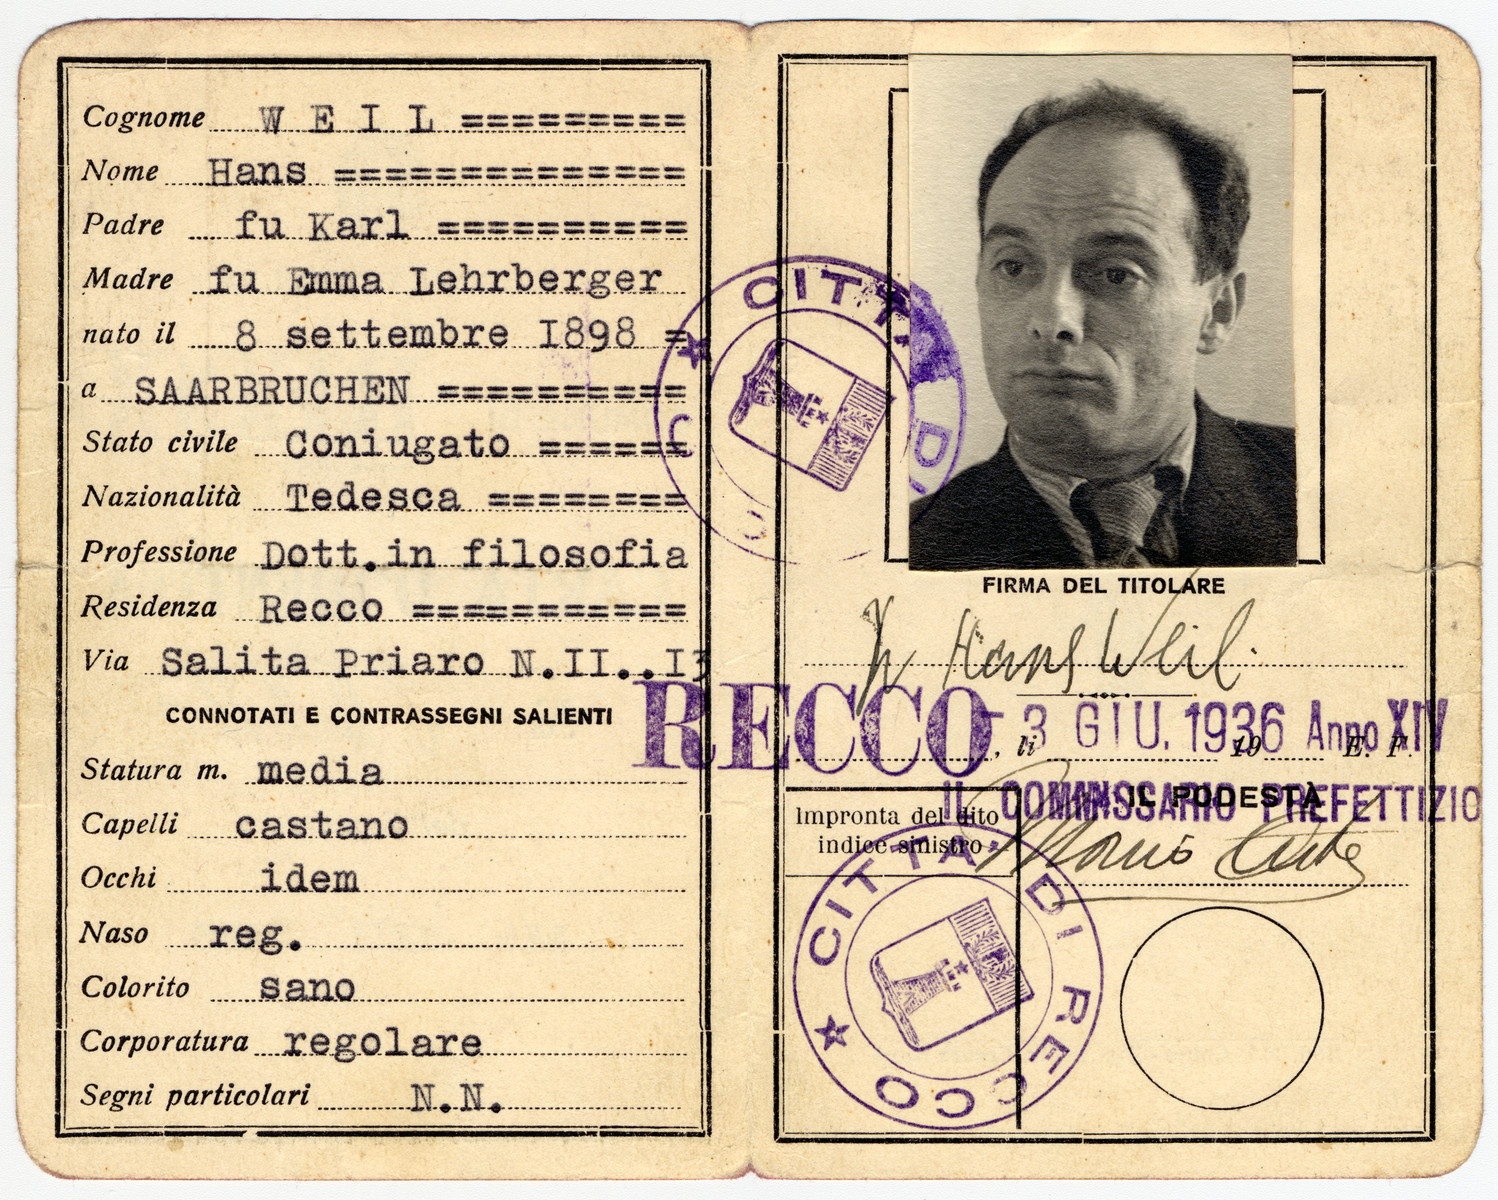 Identification paper issued to Dr. Hans Weil, A German Jewish educator who immigrated to Italy.